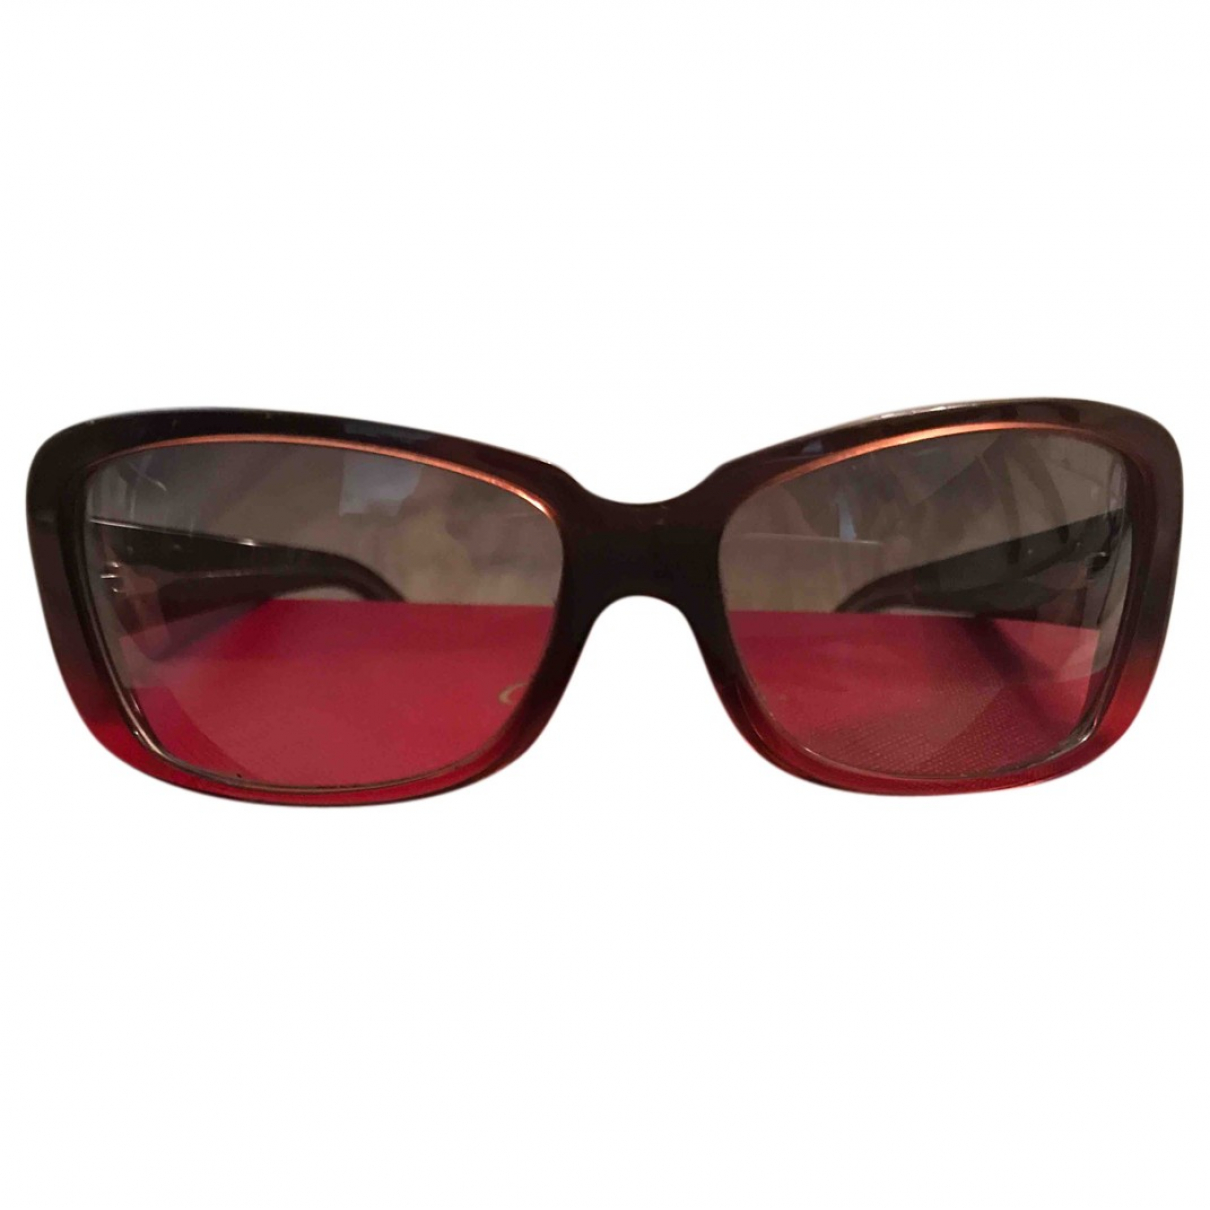 Cartier N Brown Sunglasses for Women N